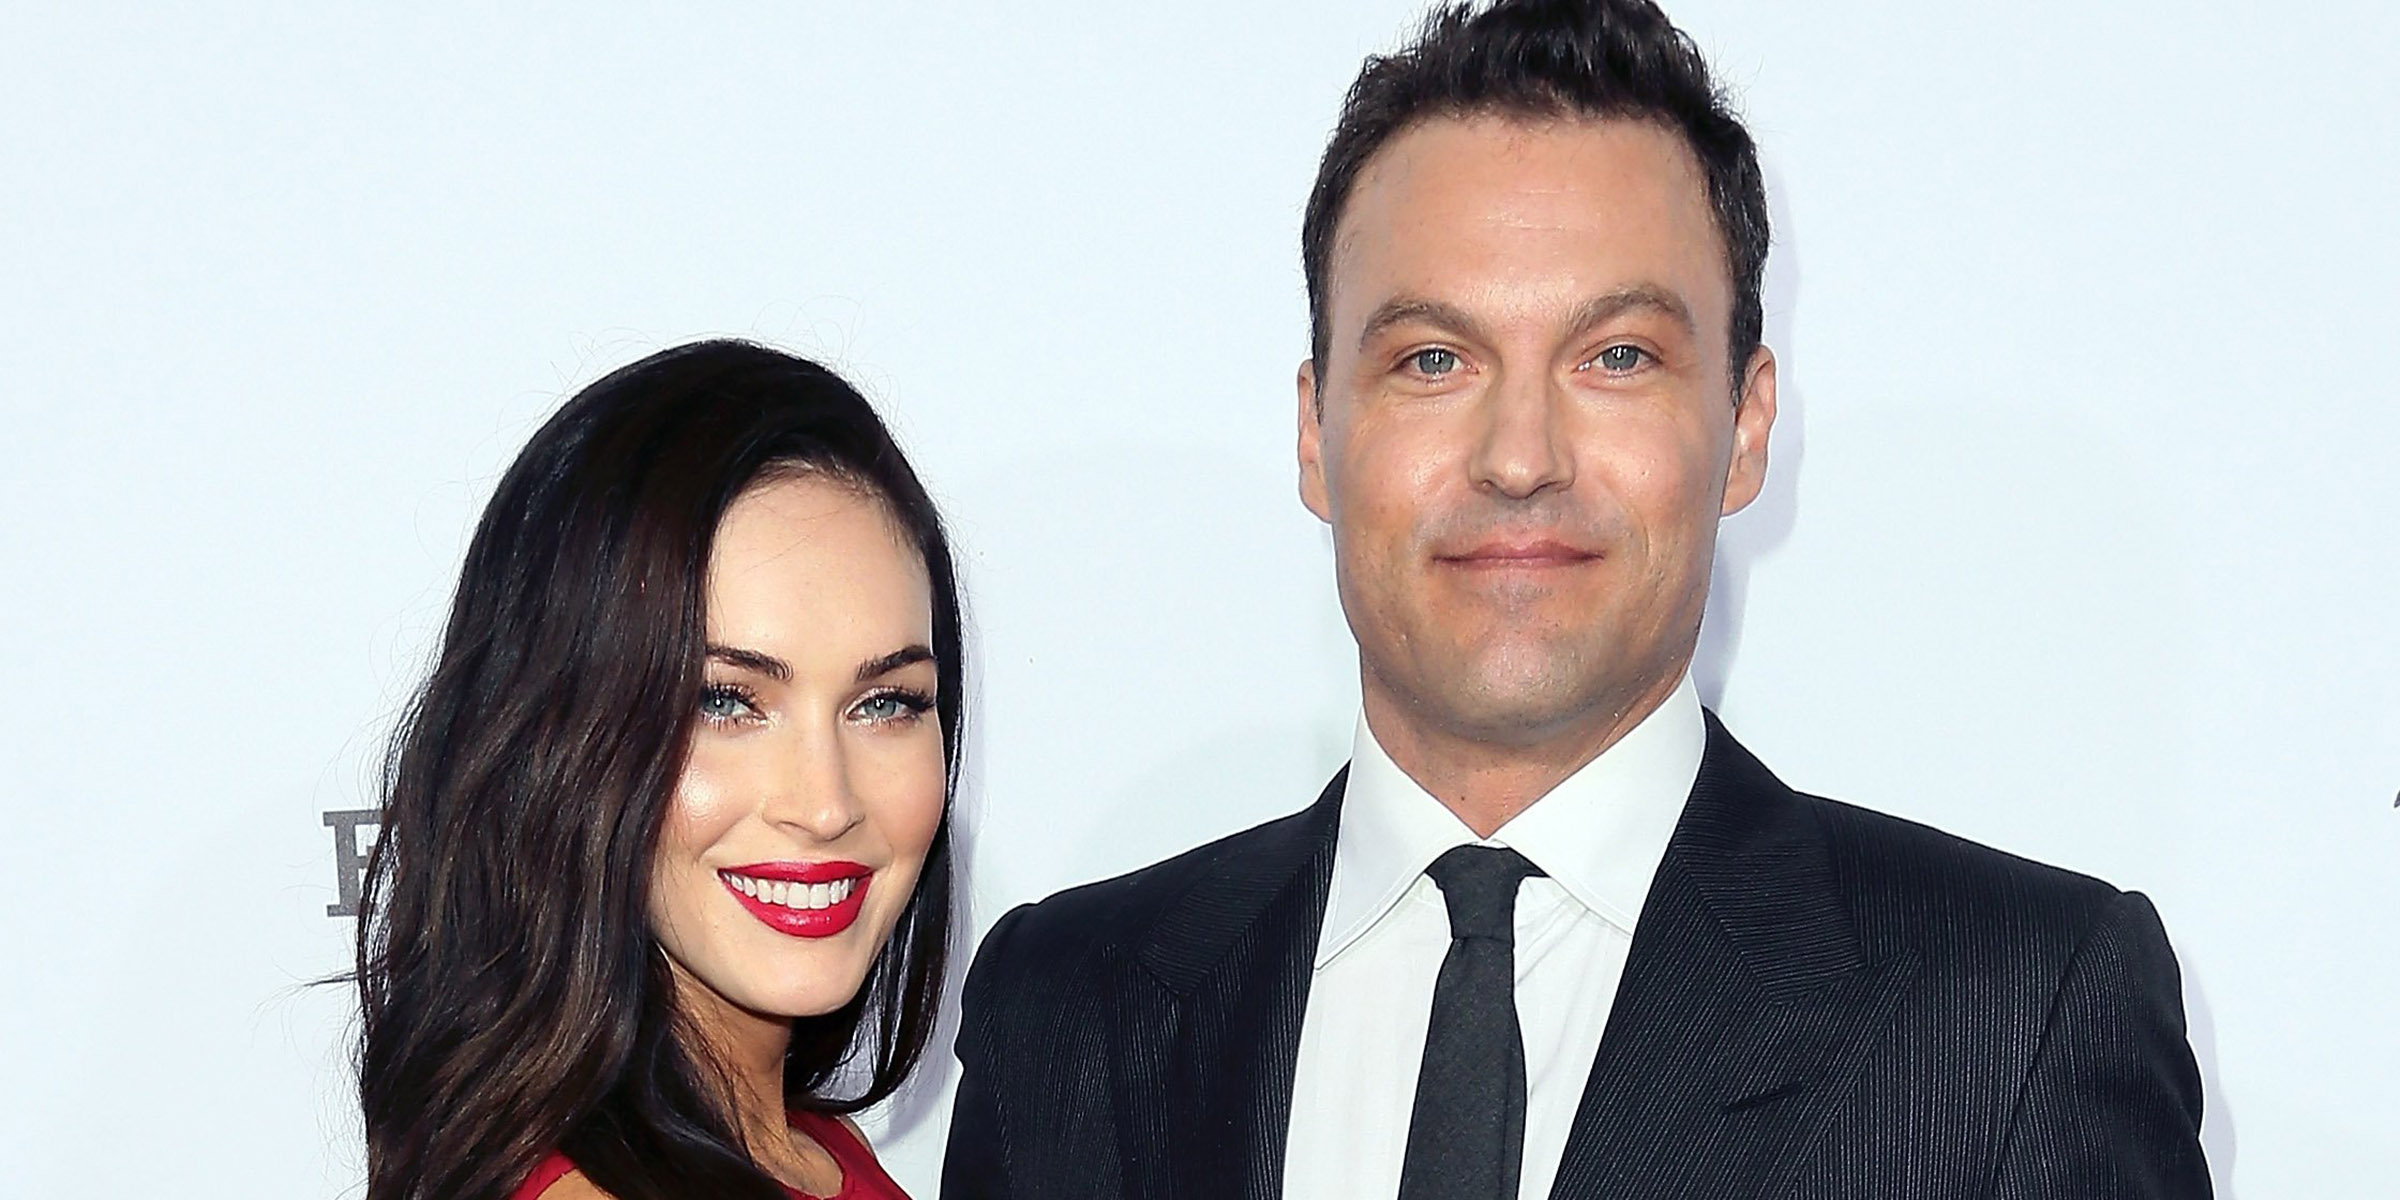 Megan Fox shares rare photos of her 3 sons and husband Brian Austin Green